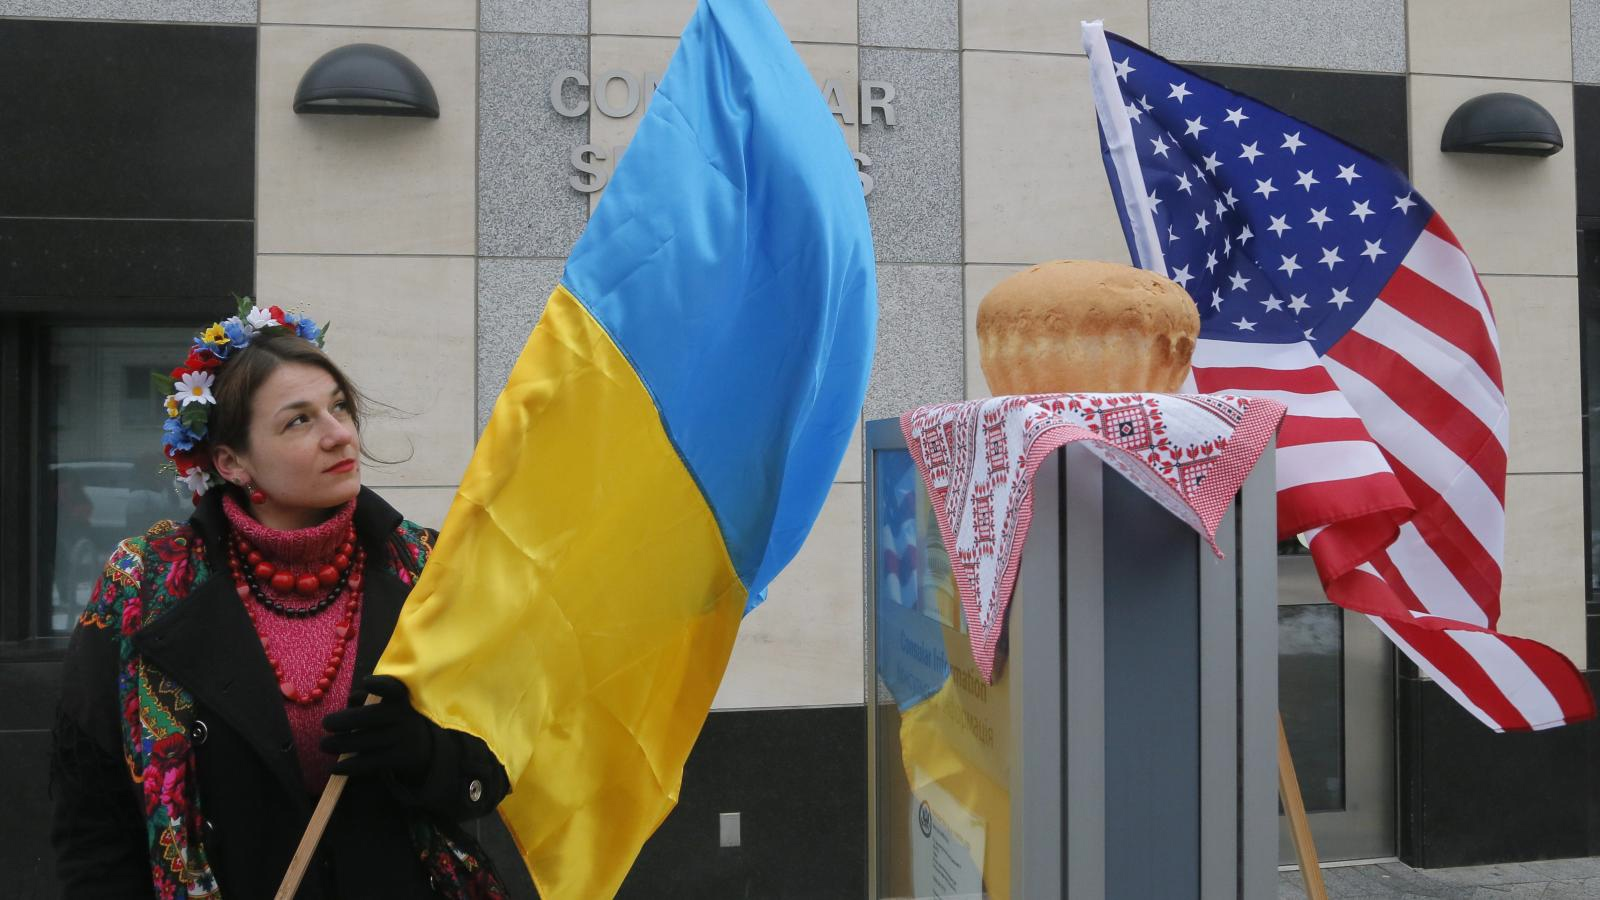 An American journalist told the truth about Ukrainian immigrants in the US